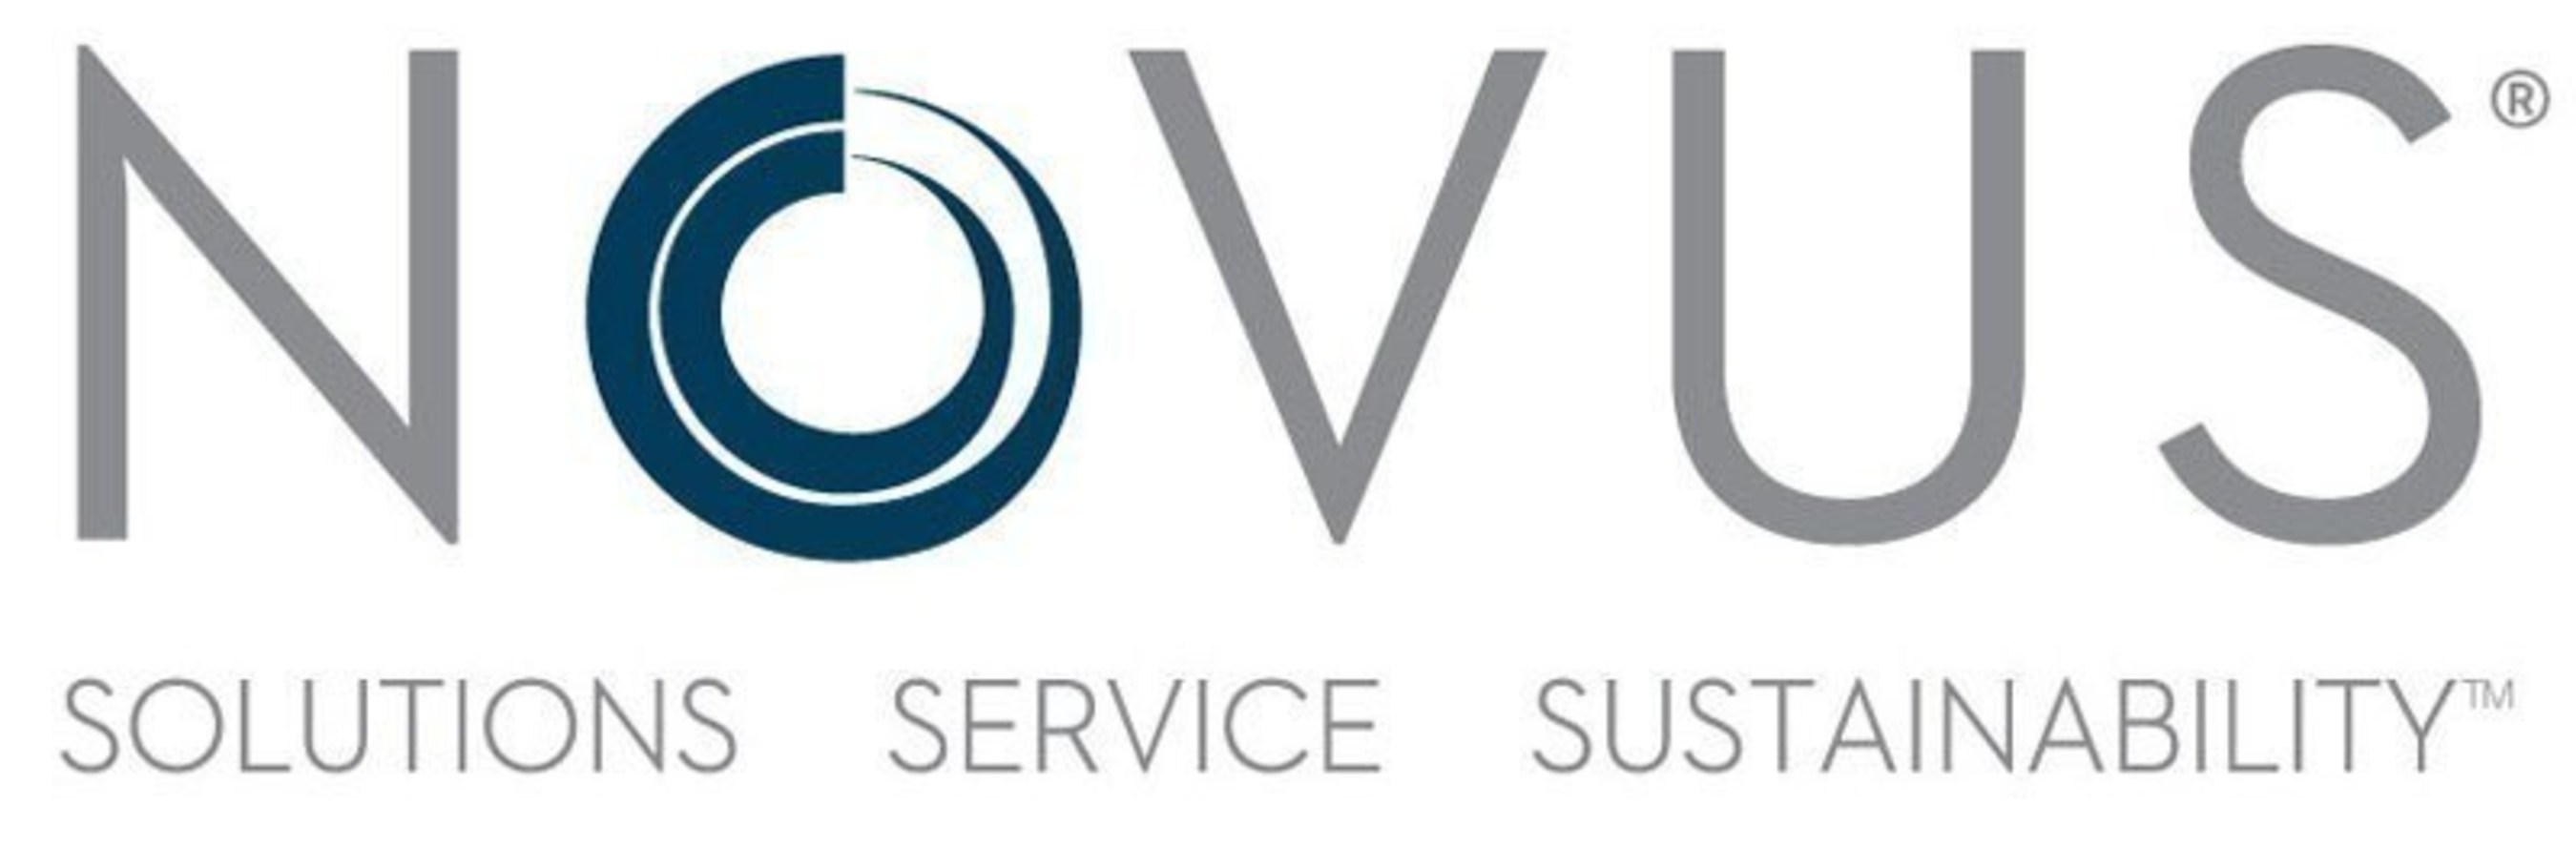 Novus International to Present Abstracts at PSA Annual Meeting